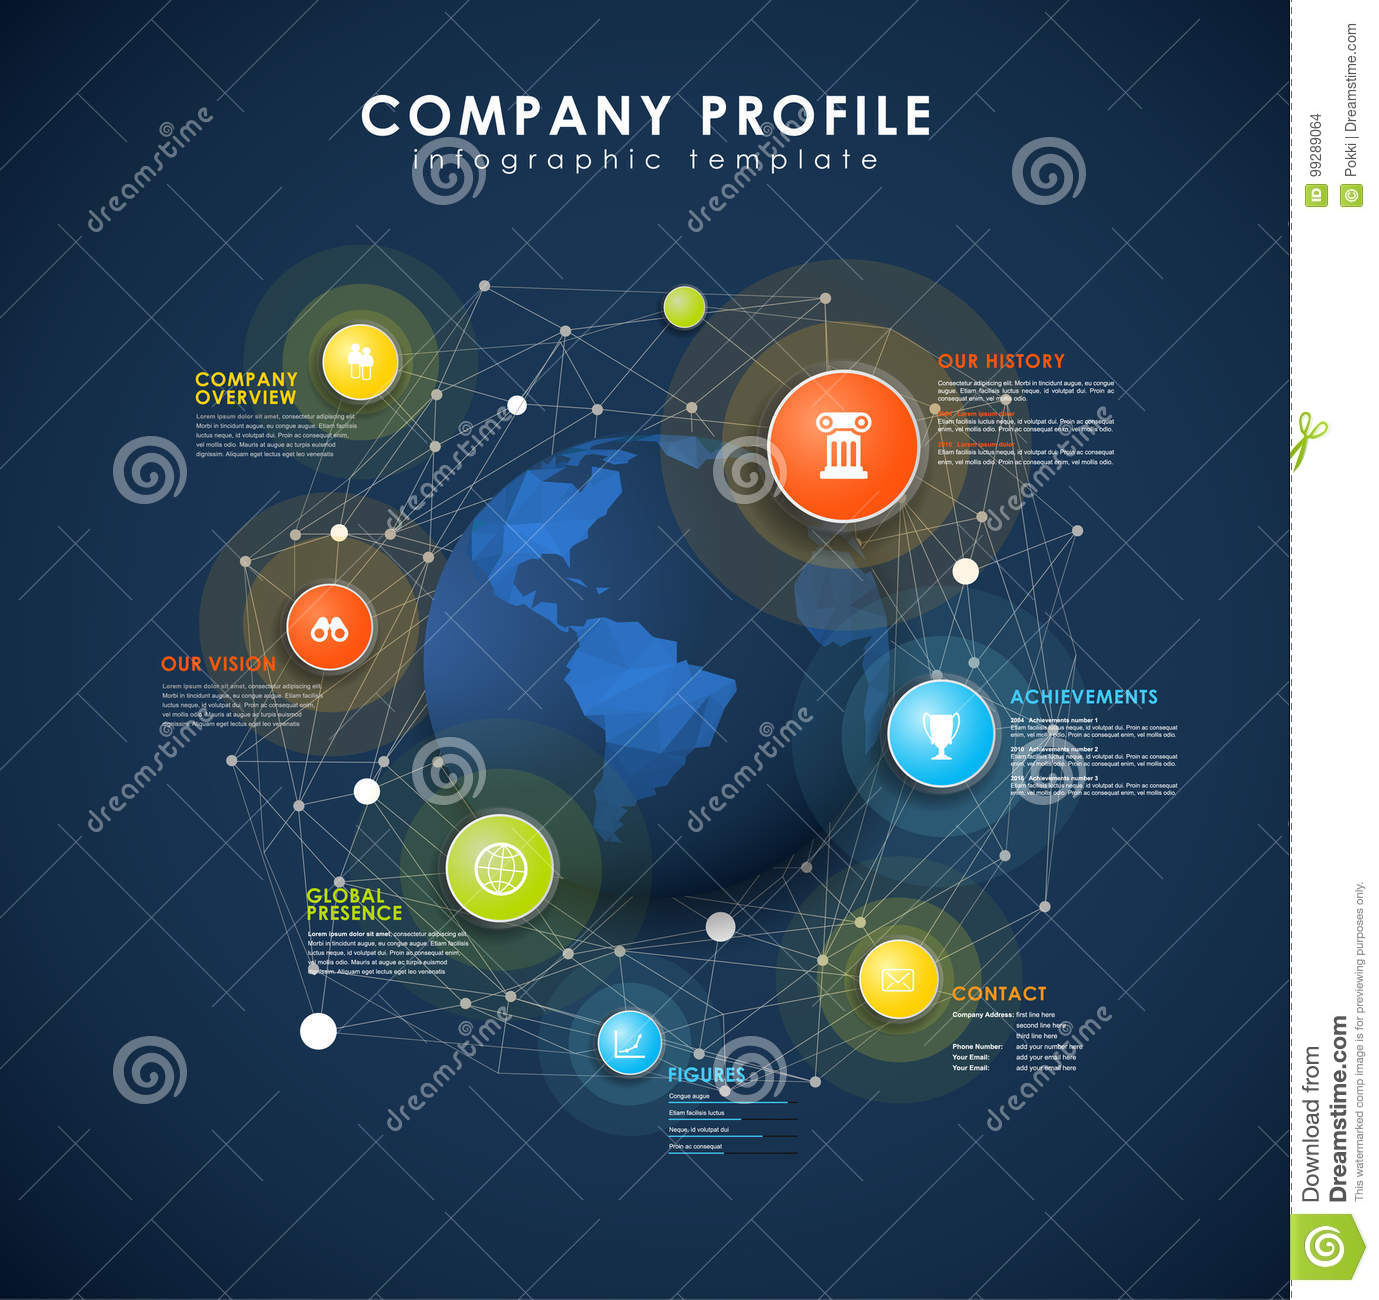 Company Profile Overview Template With Colorful Circles Stock Vector